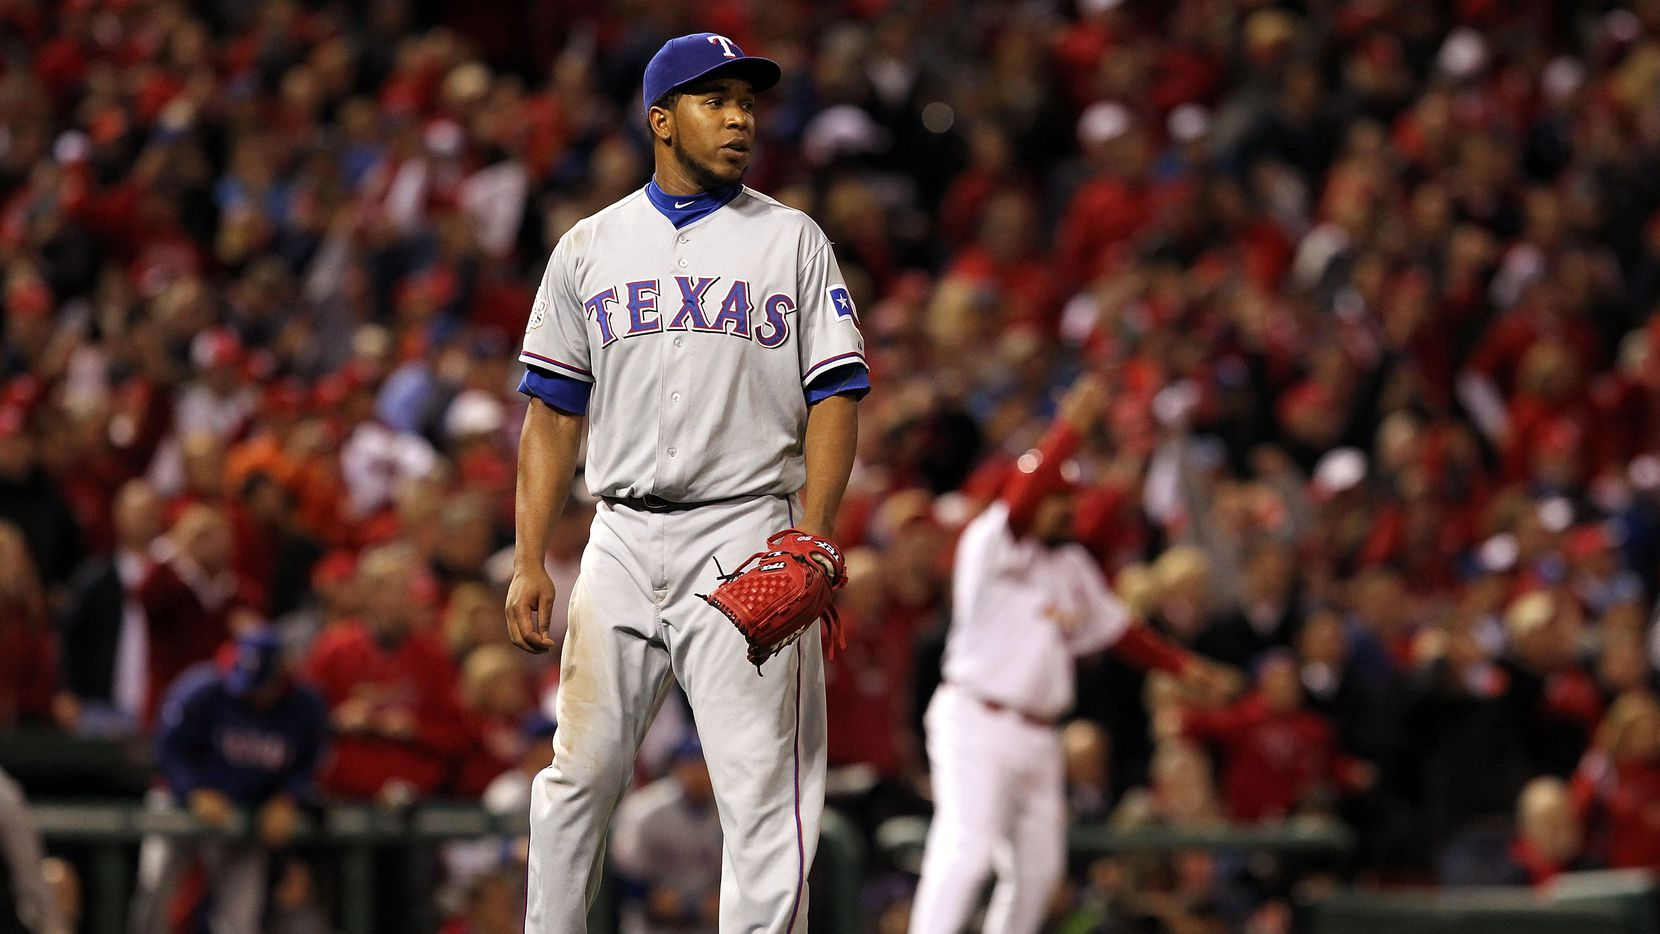 Neftali Feliz #30 of the Texas Rangers reacts after giving up a game tying two-run RBI triple to David Freese #23 of the St. Louis Cardinals in the bottom of the ninth during Game Six of the MLB World Series at Busch Stadium on October 27, 2011 in St Louis, Missouri.